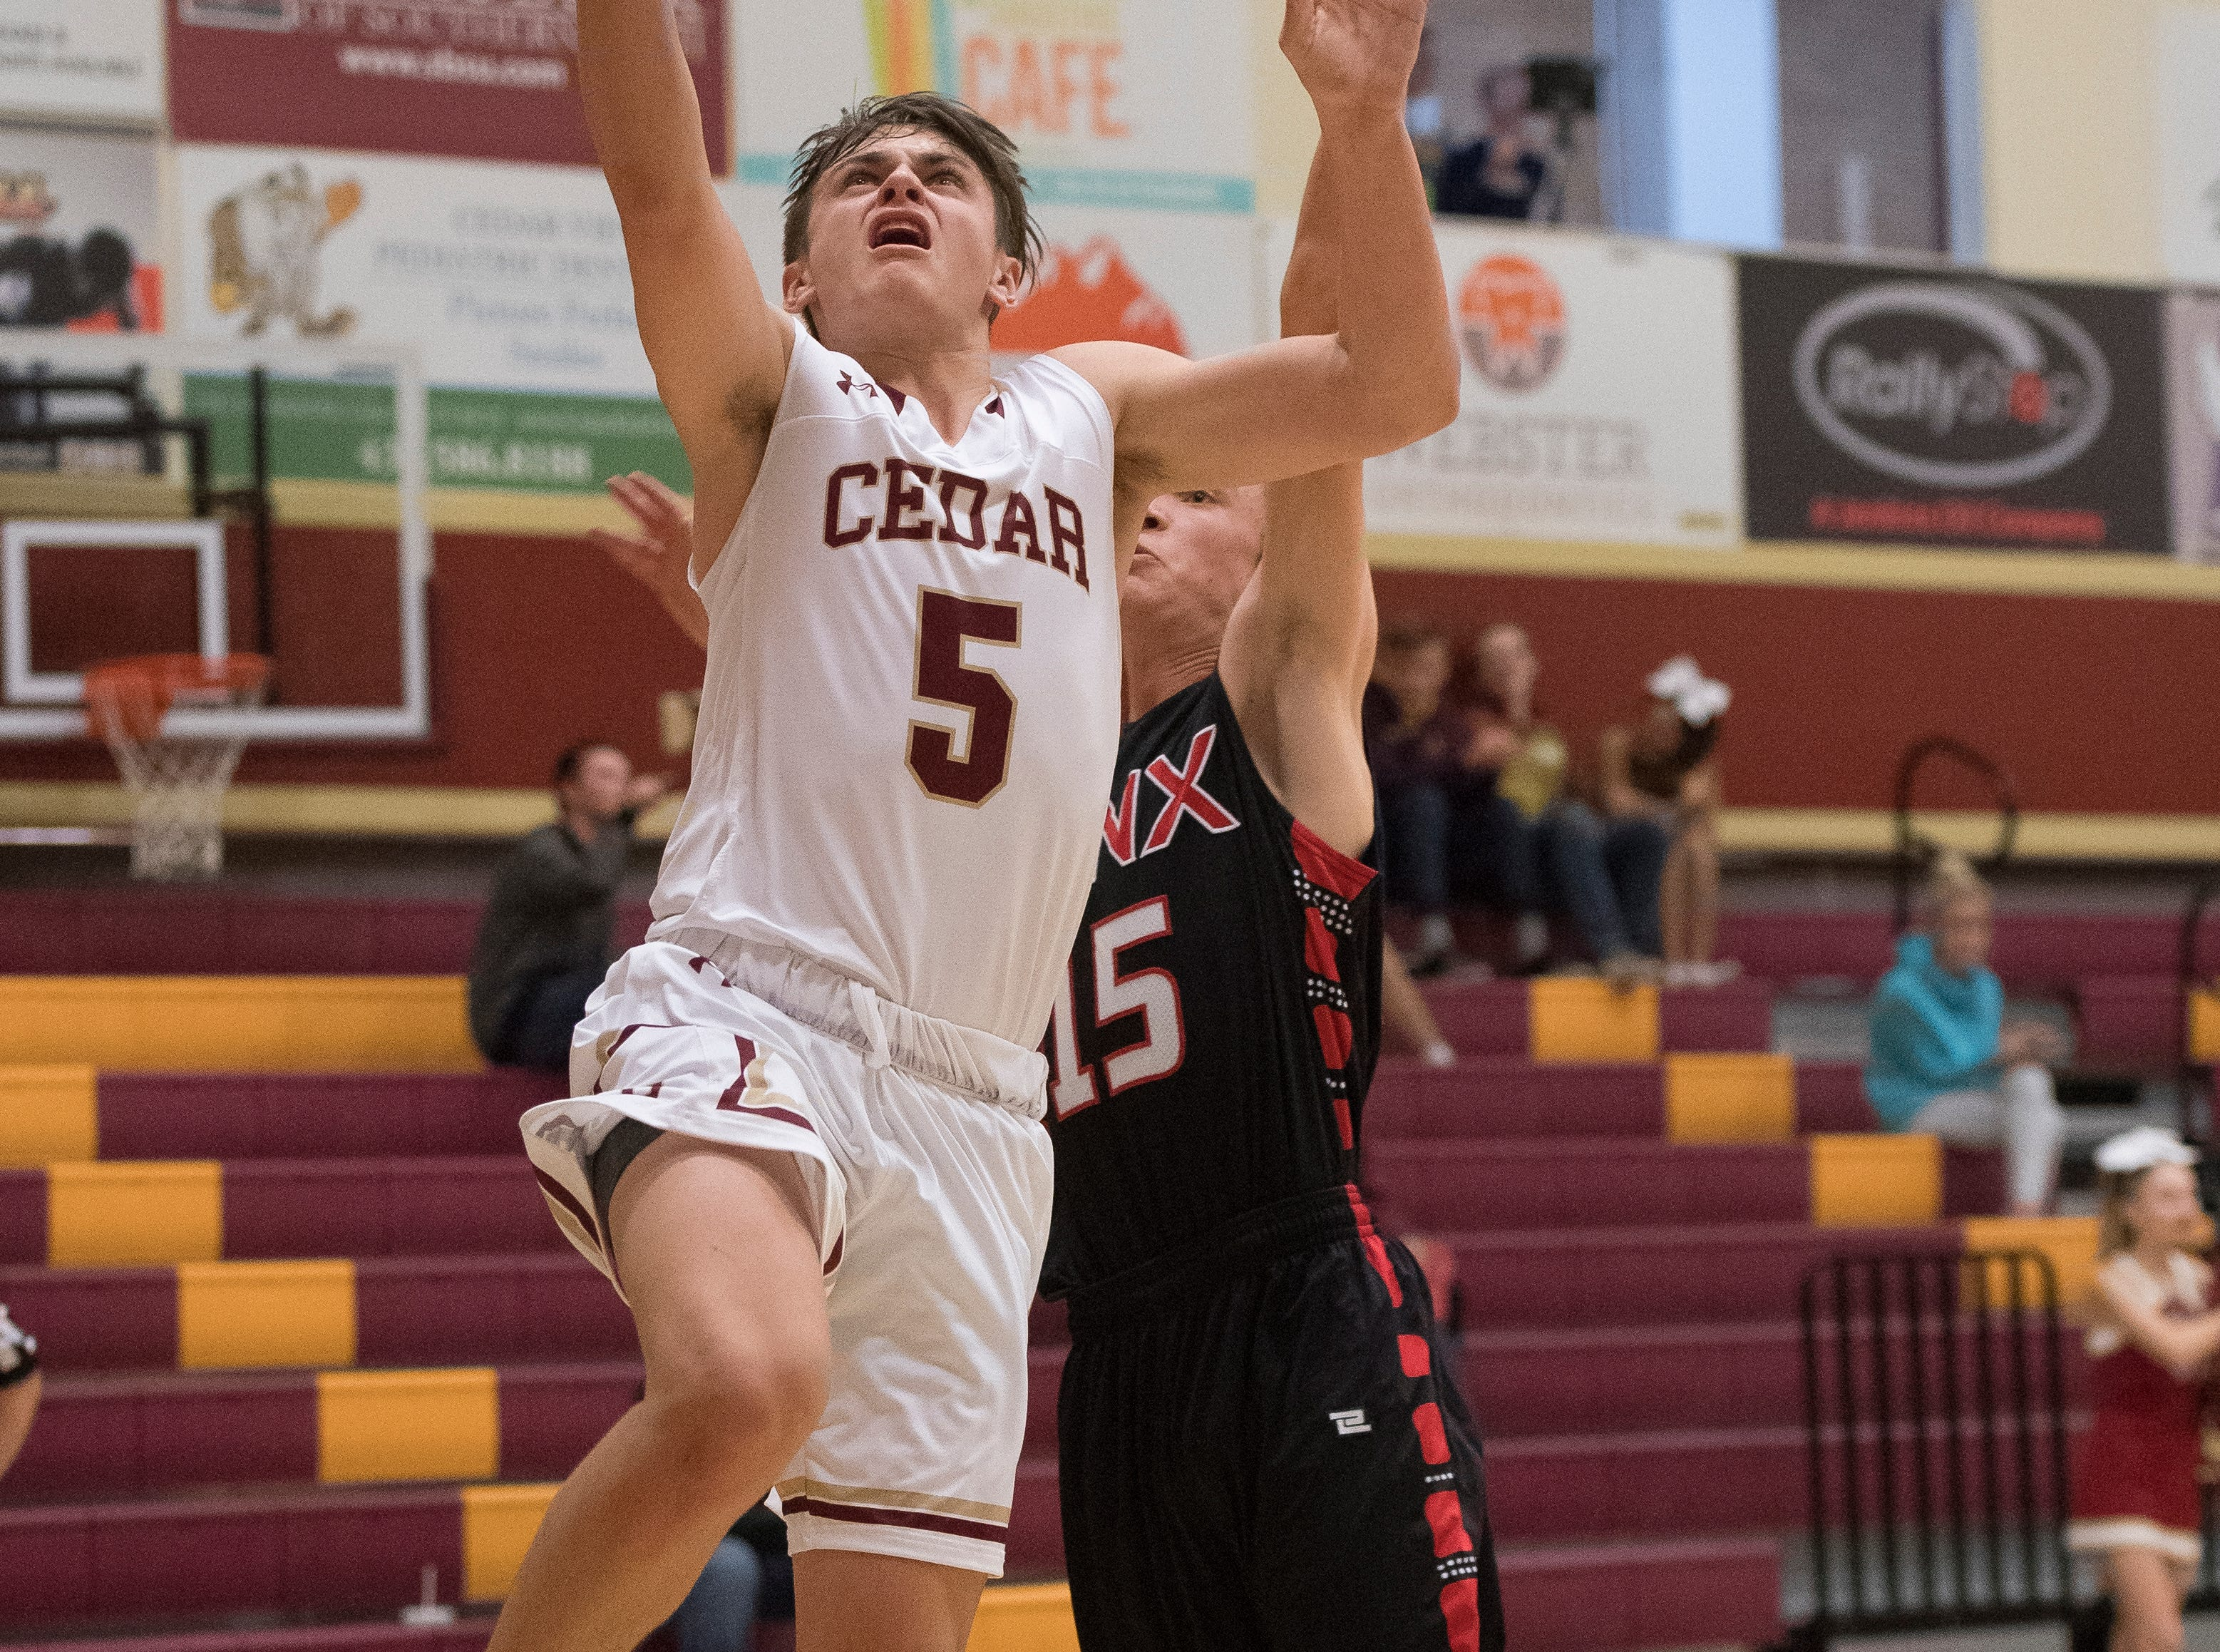 Cedar High School sophomore Treyton Tebbs (5) makes a shot against Lincoln County at CHS Wednesday, December 12, 2018. The Redmen won, 80-54.